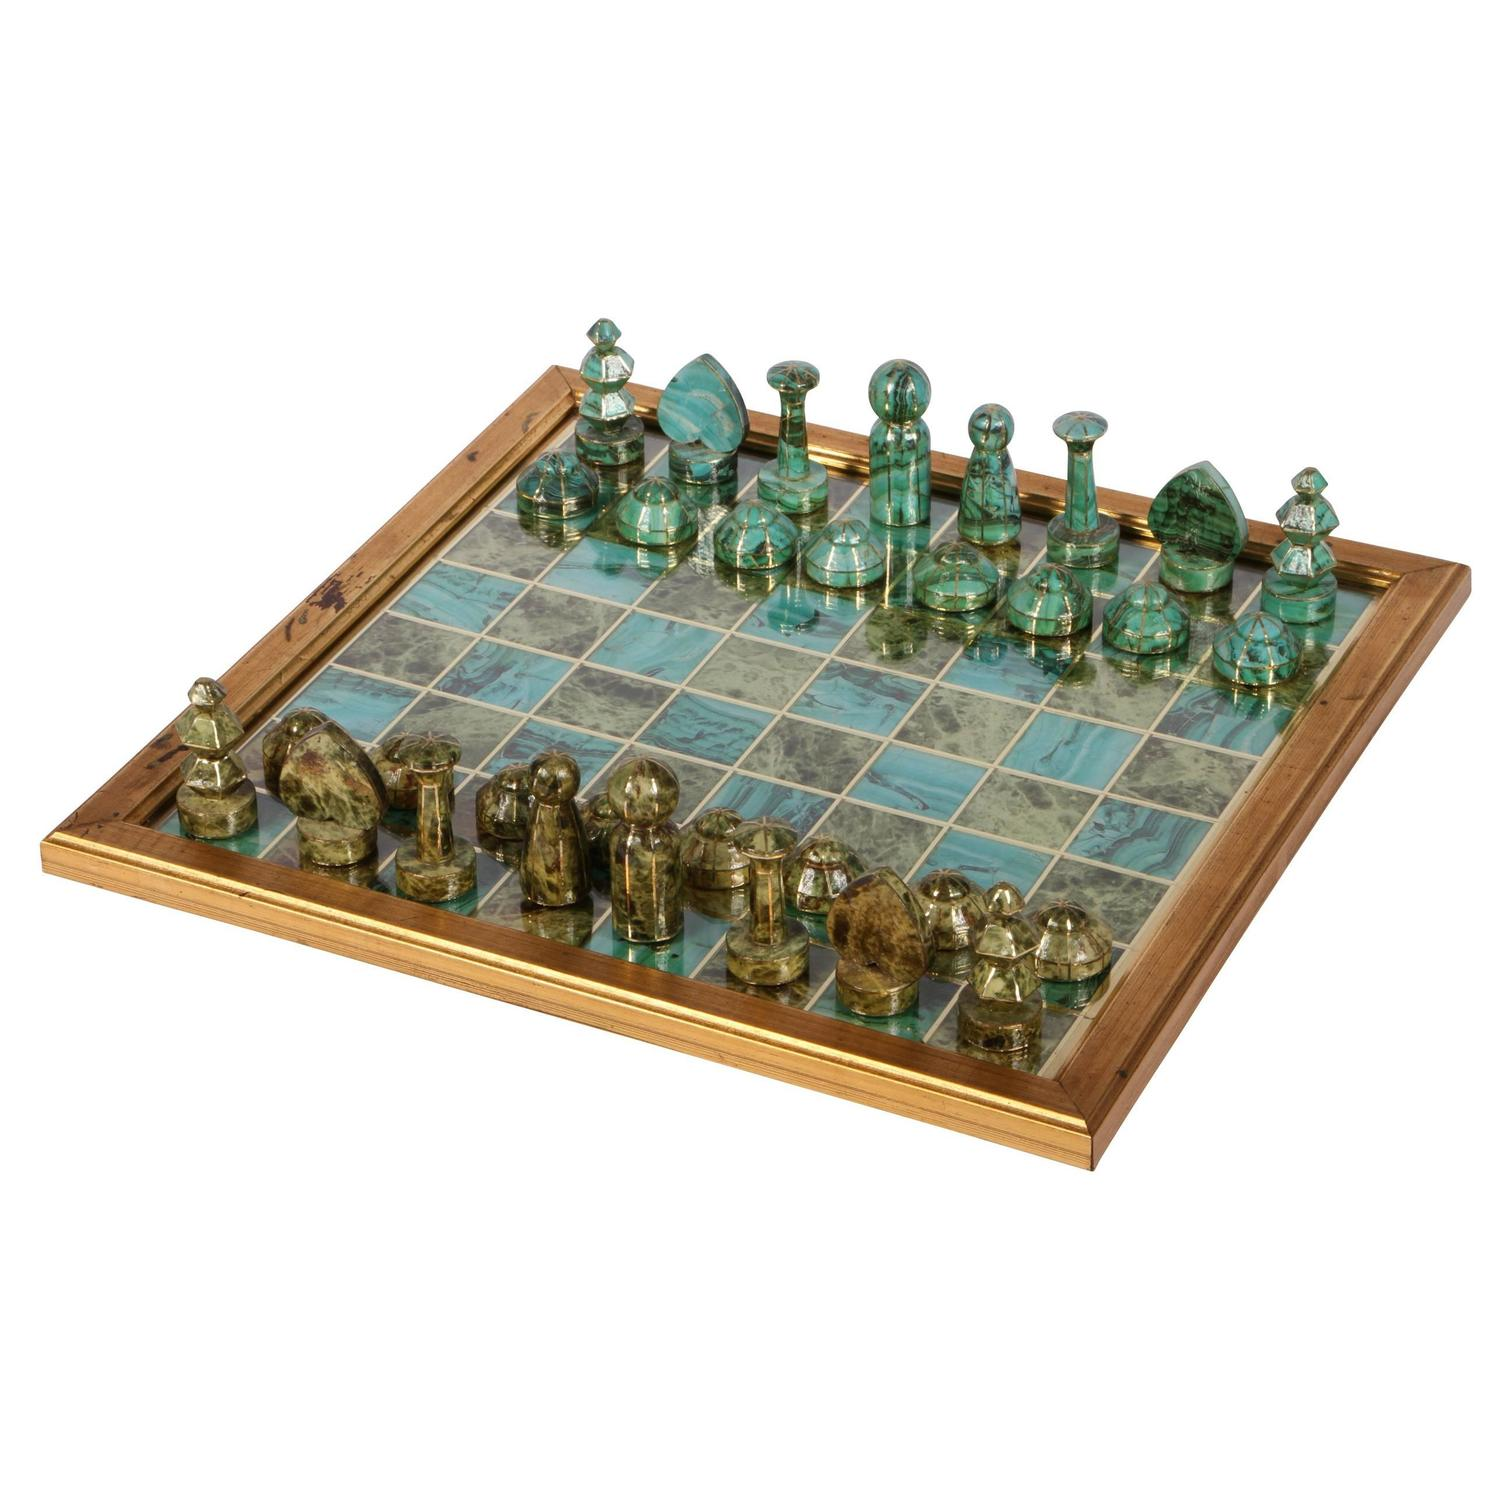 Chess Board Sale Decoupage Chess Board With Gaming Pieces For Sale At 1stdibs